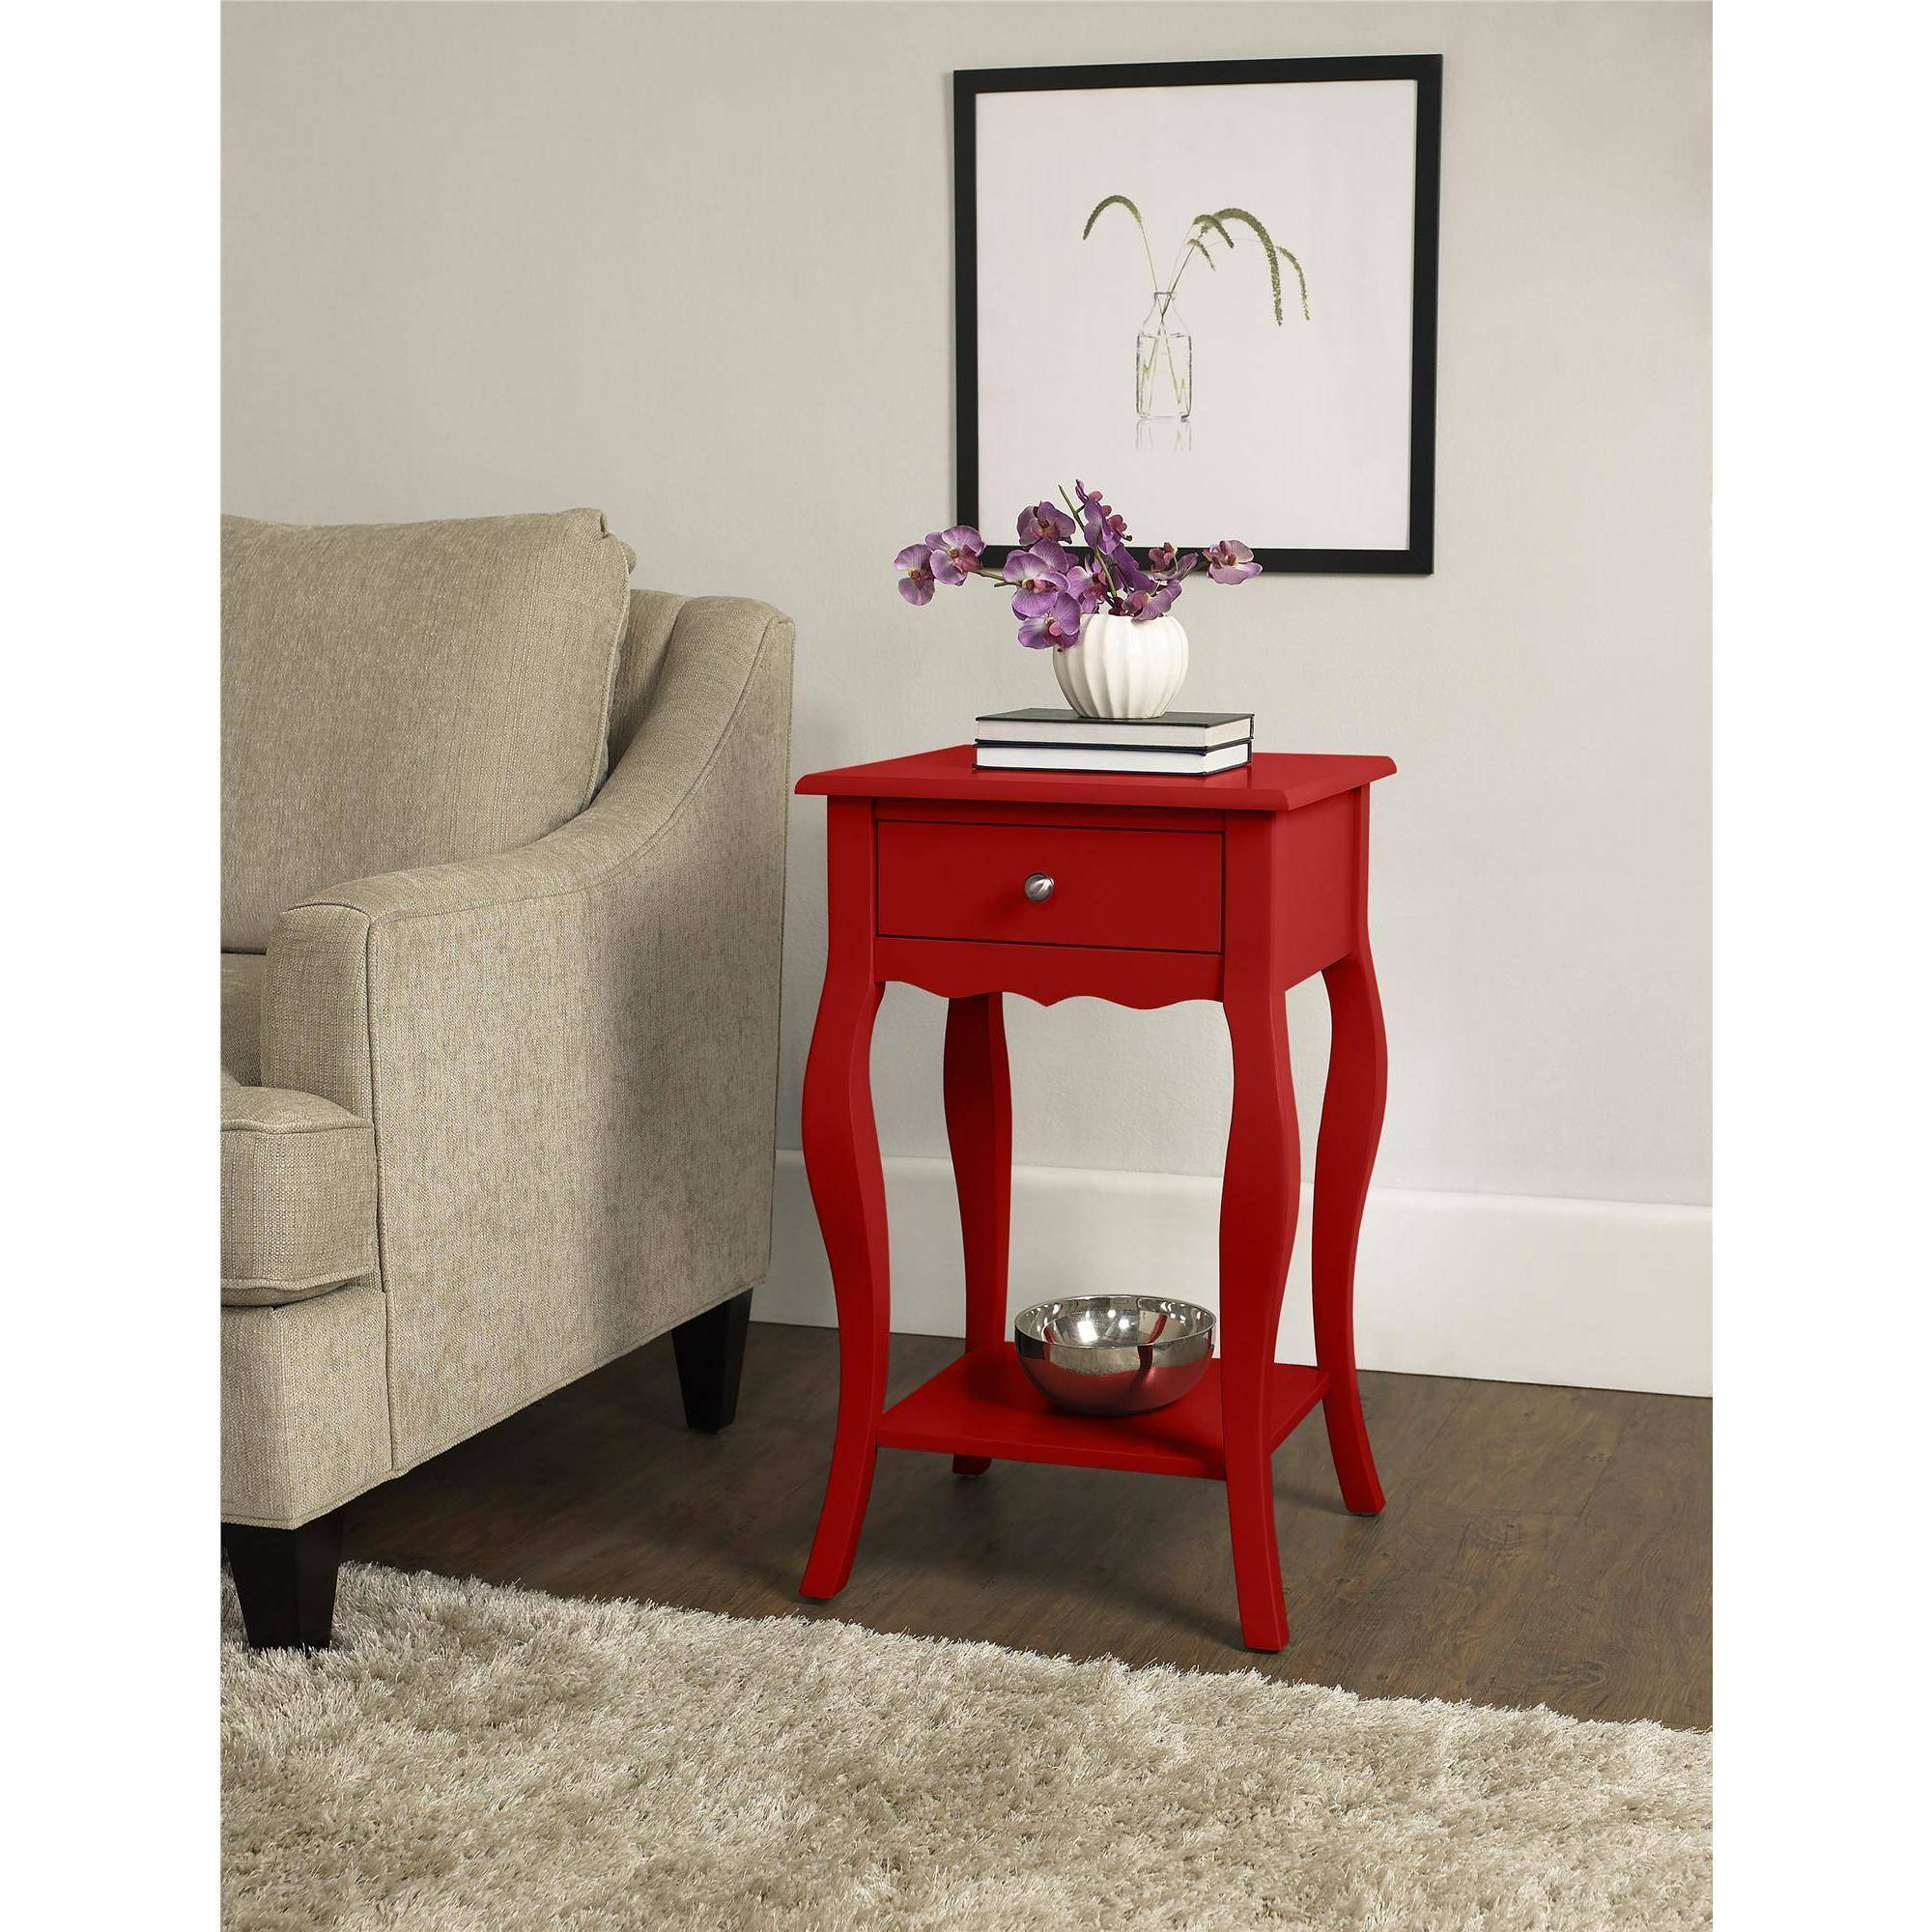 ameriwood home kennedy accent table red glass kitchen grill griddle metal patio furniture sets grey end target large lamp white marble cocktail desk drawer chest pottery barn mini